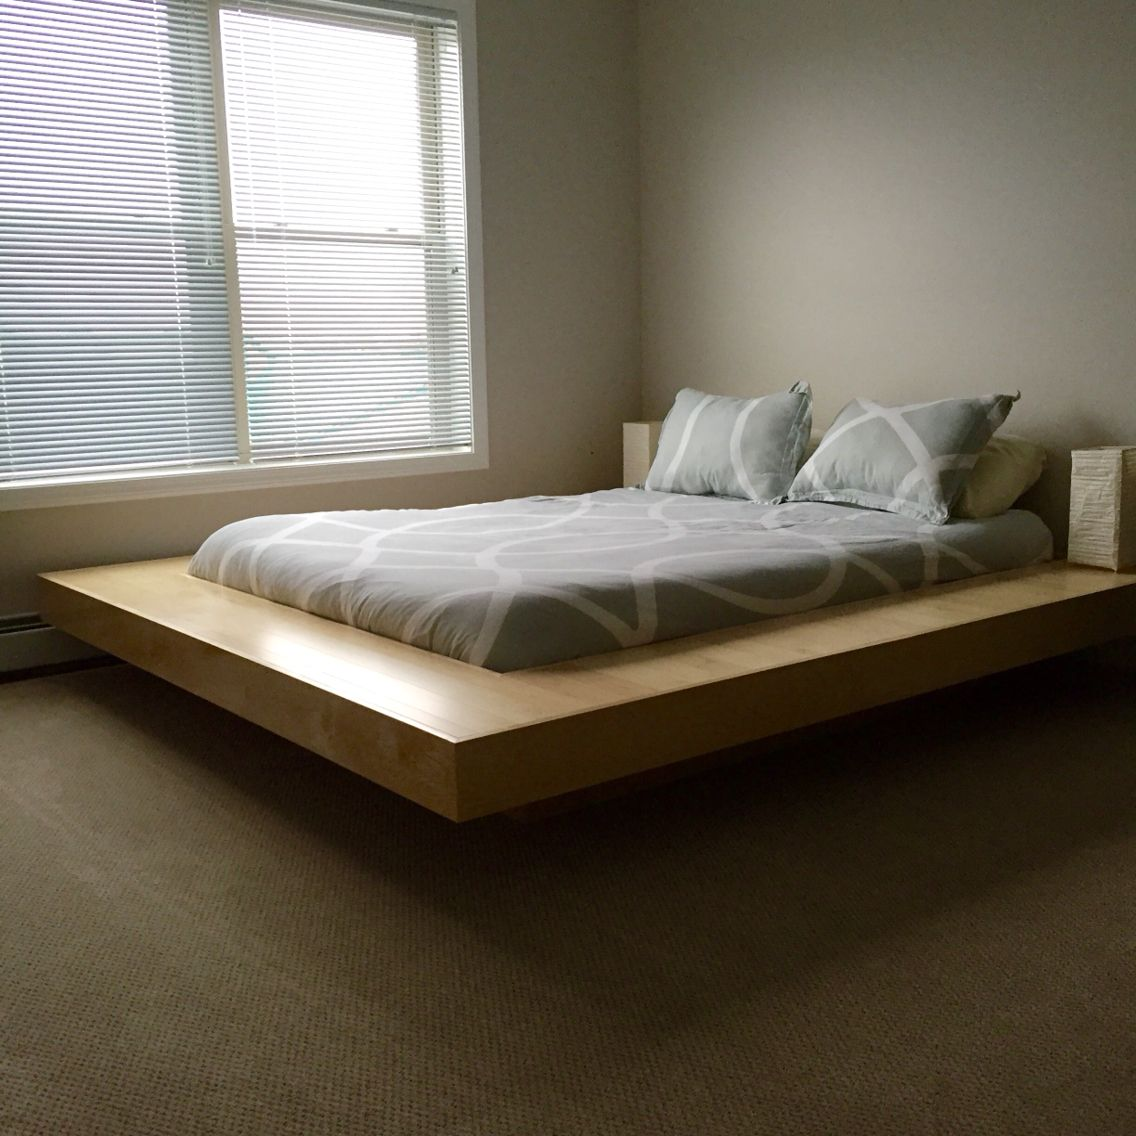 Maple Wood Floating Platform Bed Frame DIY Floating Maple